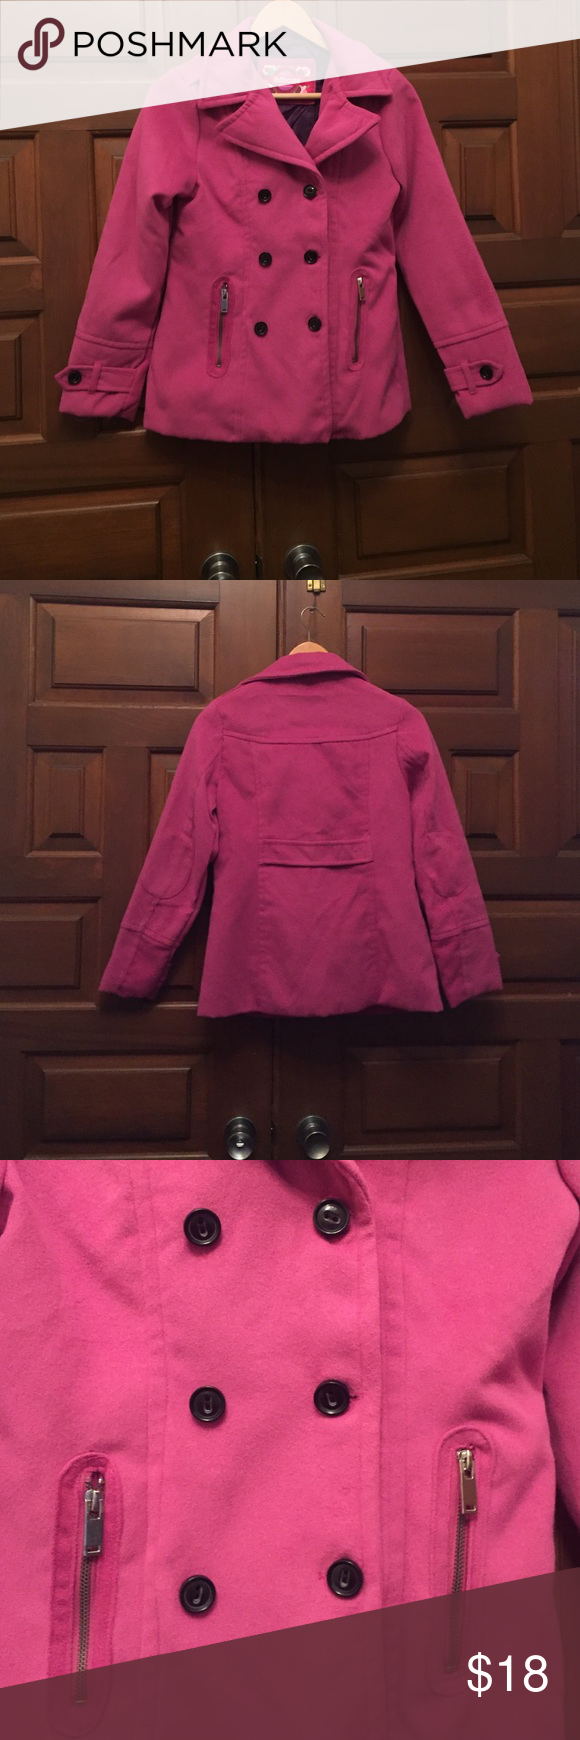 Pink winter coat with zipper pockets Cute pink winter coat. Has black buttons and zipper pockets. There are buttons on the ends of the sleeves and buttons on the shoulders. There is a strap on the back and it has elbow pads. Never worn in great condition. 100% polyester shell. 100% polyester lining.  Faux fur:  55% acrylic and 45% polyester Dollhouse Jackets & Coats Pea Coats